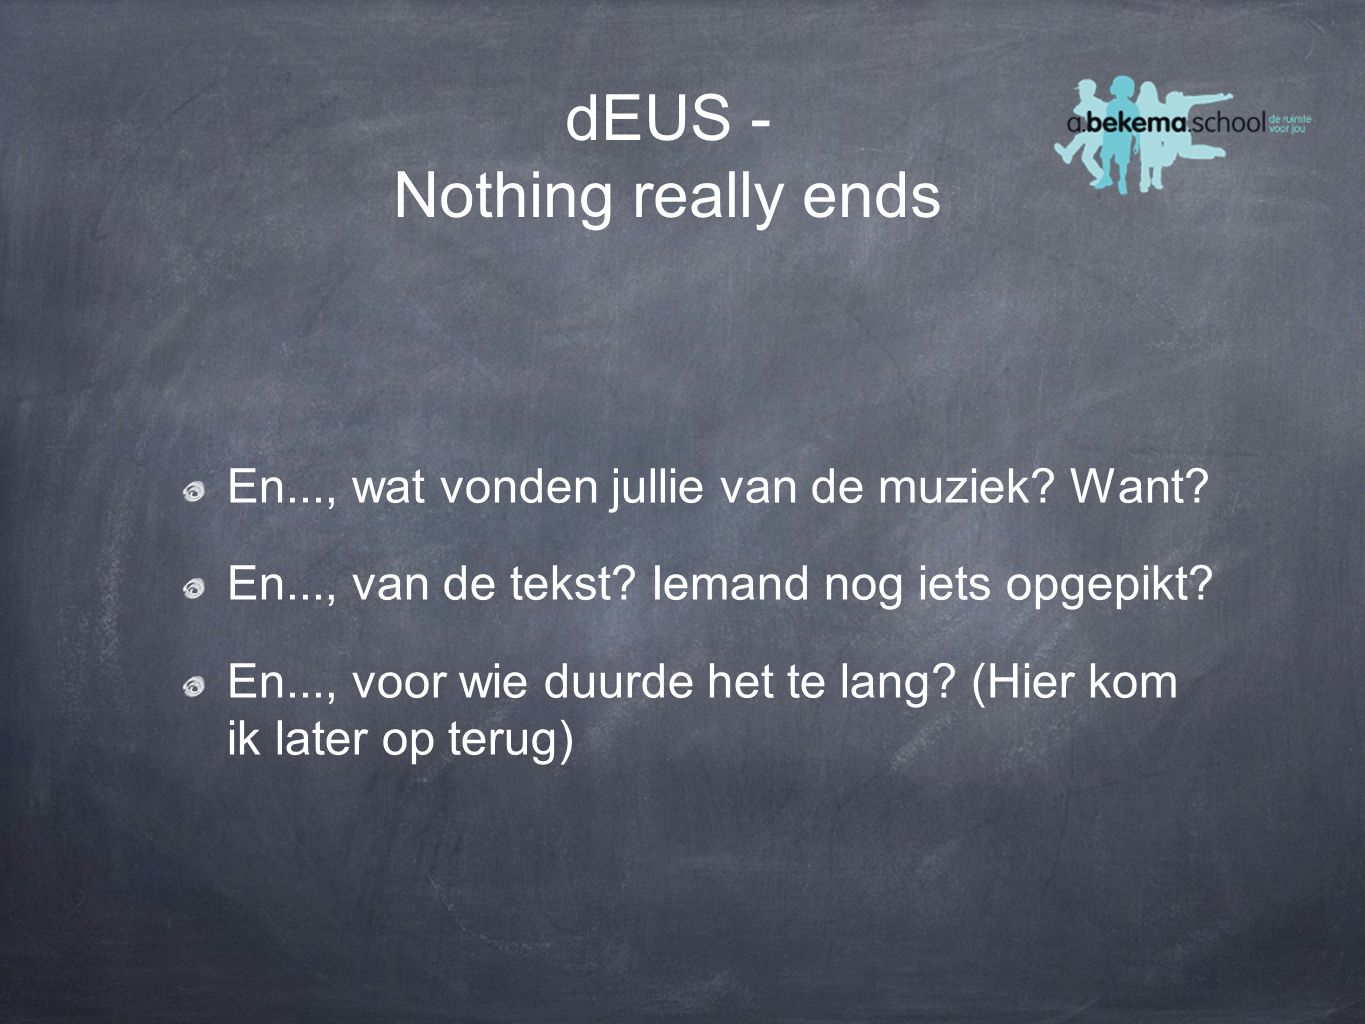 dEUS - Nothing really ends